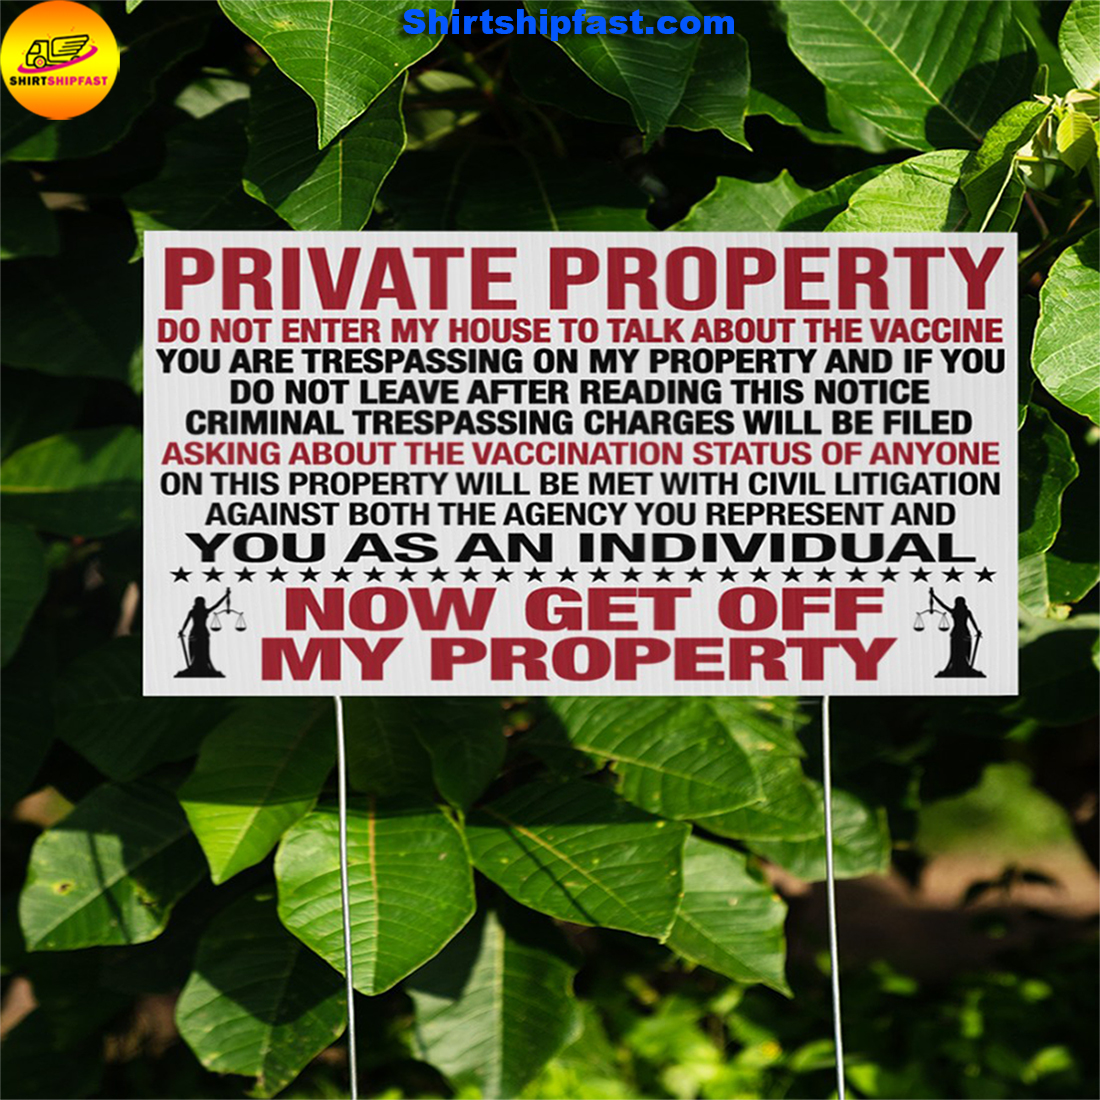 PRIVATE PROPERTY DO NOT ENTER MY HOUSE TO TALK ABOUT THE VACCINE DOORMAT